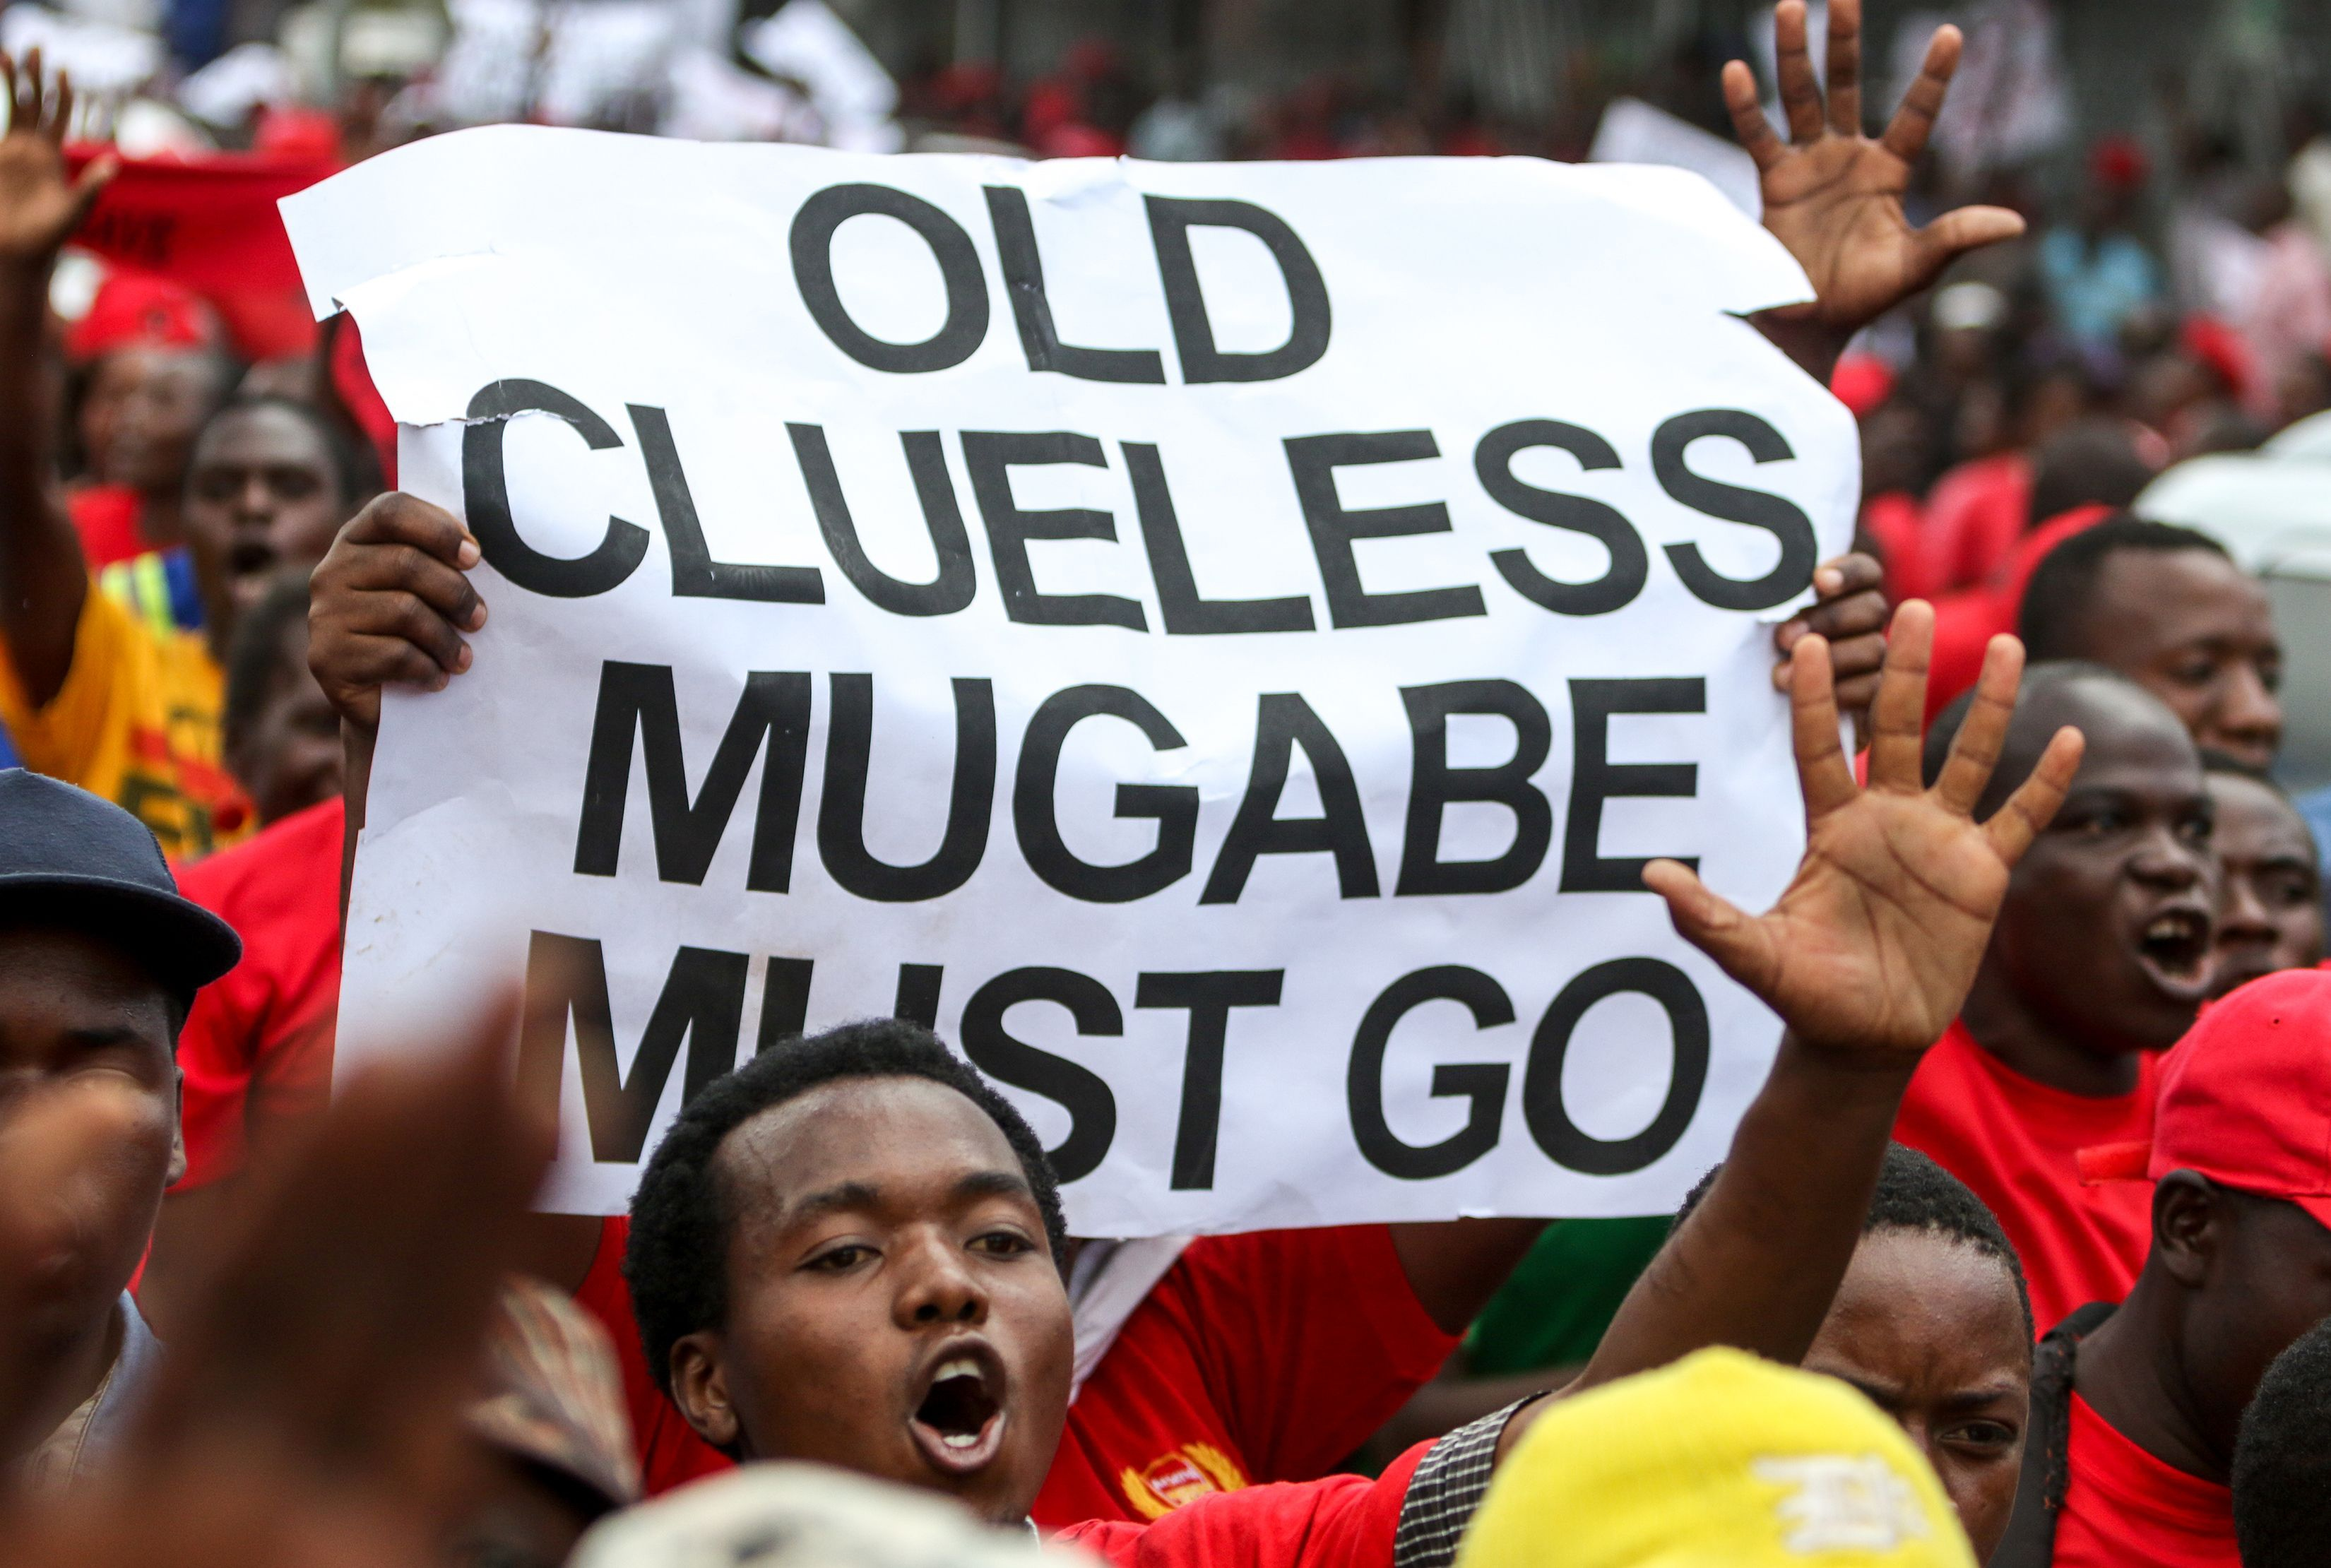 Movement for Democratic Change (MDC) youth supporters hold up a sign during a demonstration by the opposition party in Harare on April 14, 2016